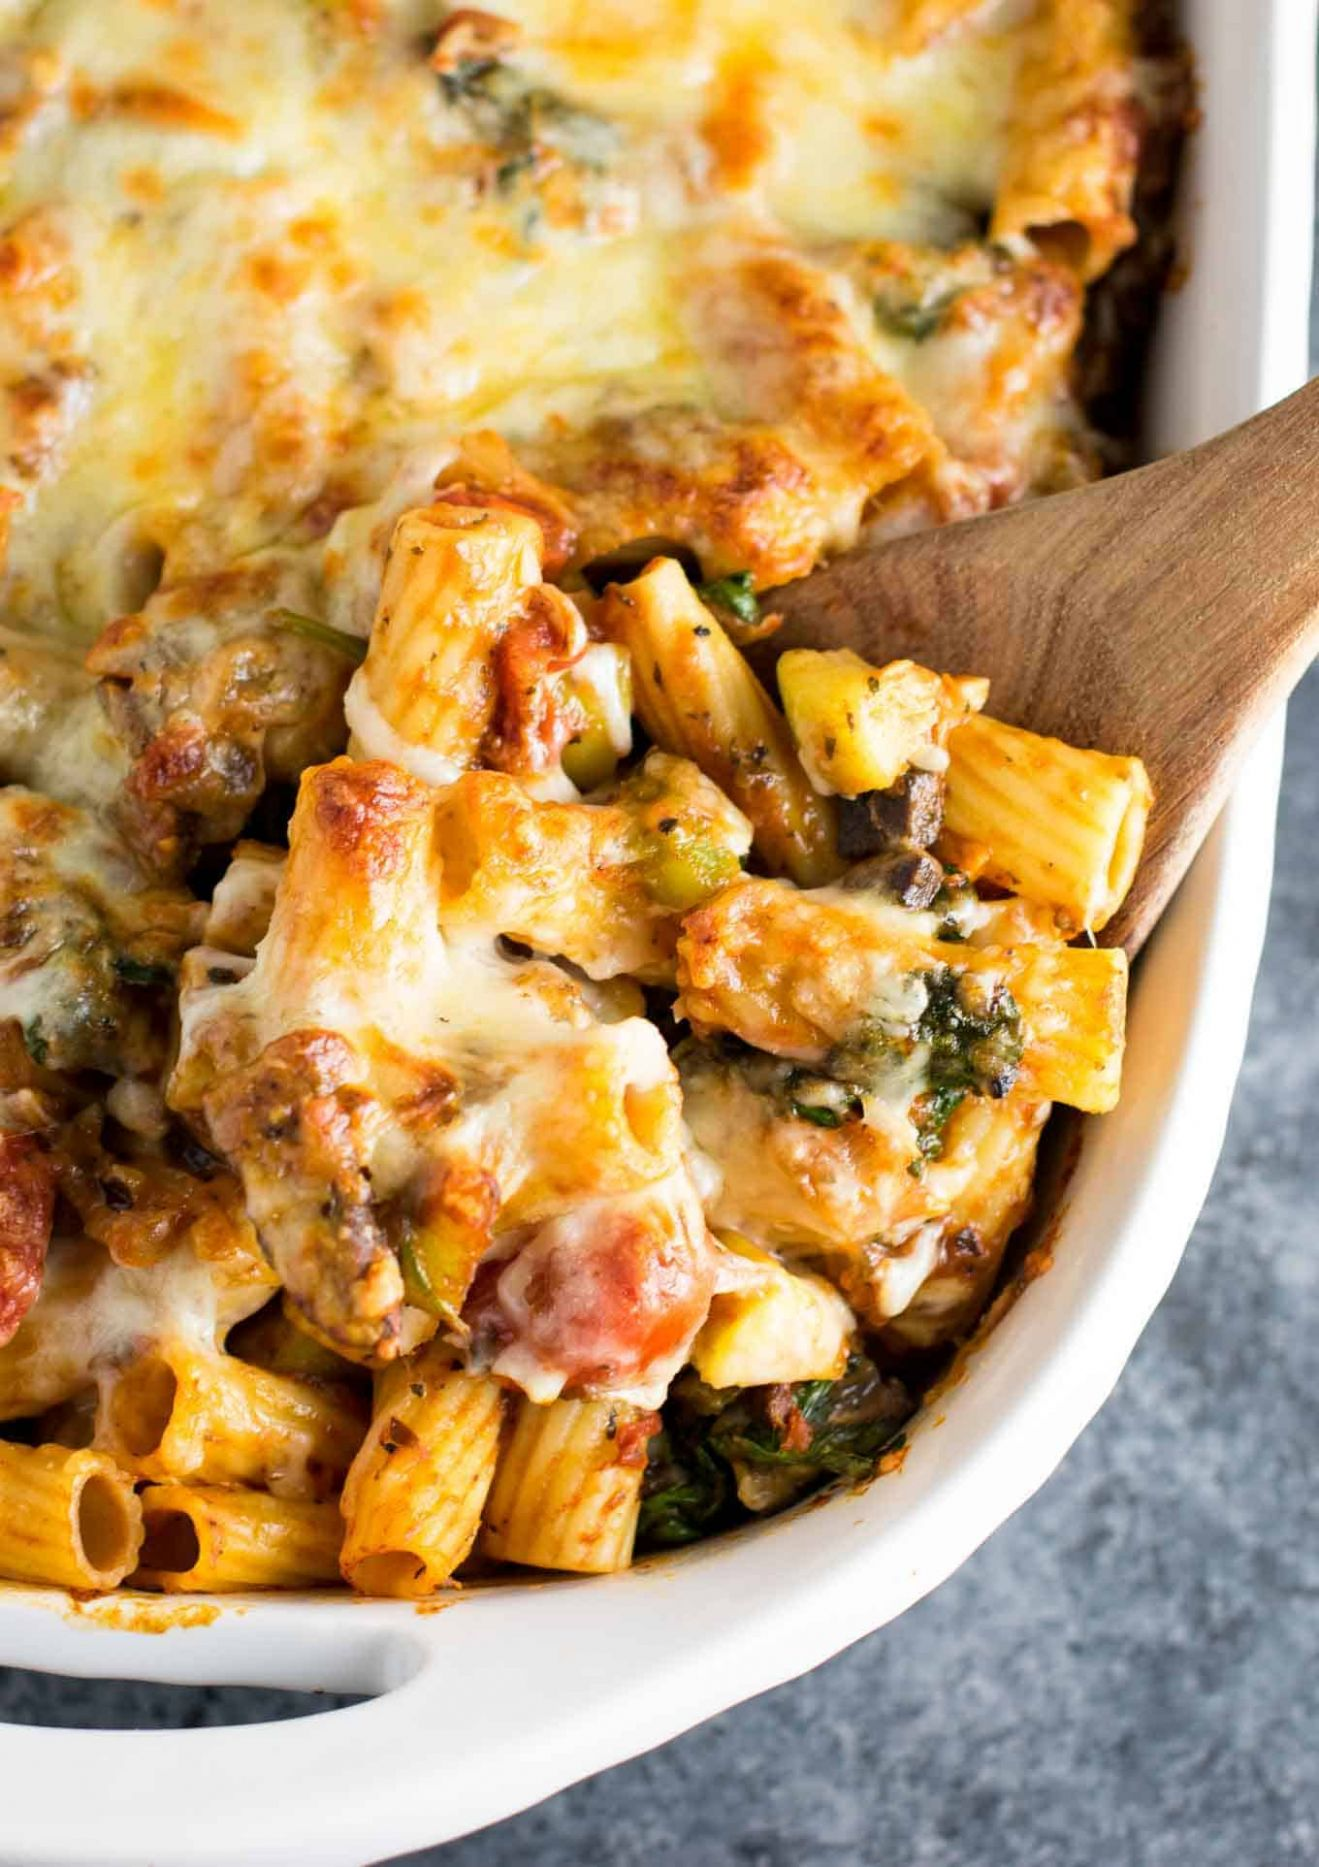 Veggie Lover's Baked Rigatoni - Build Your Bite